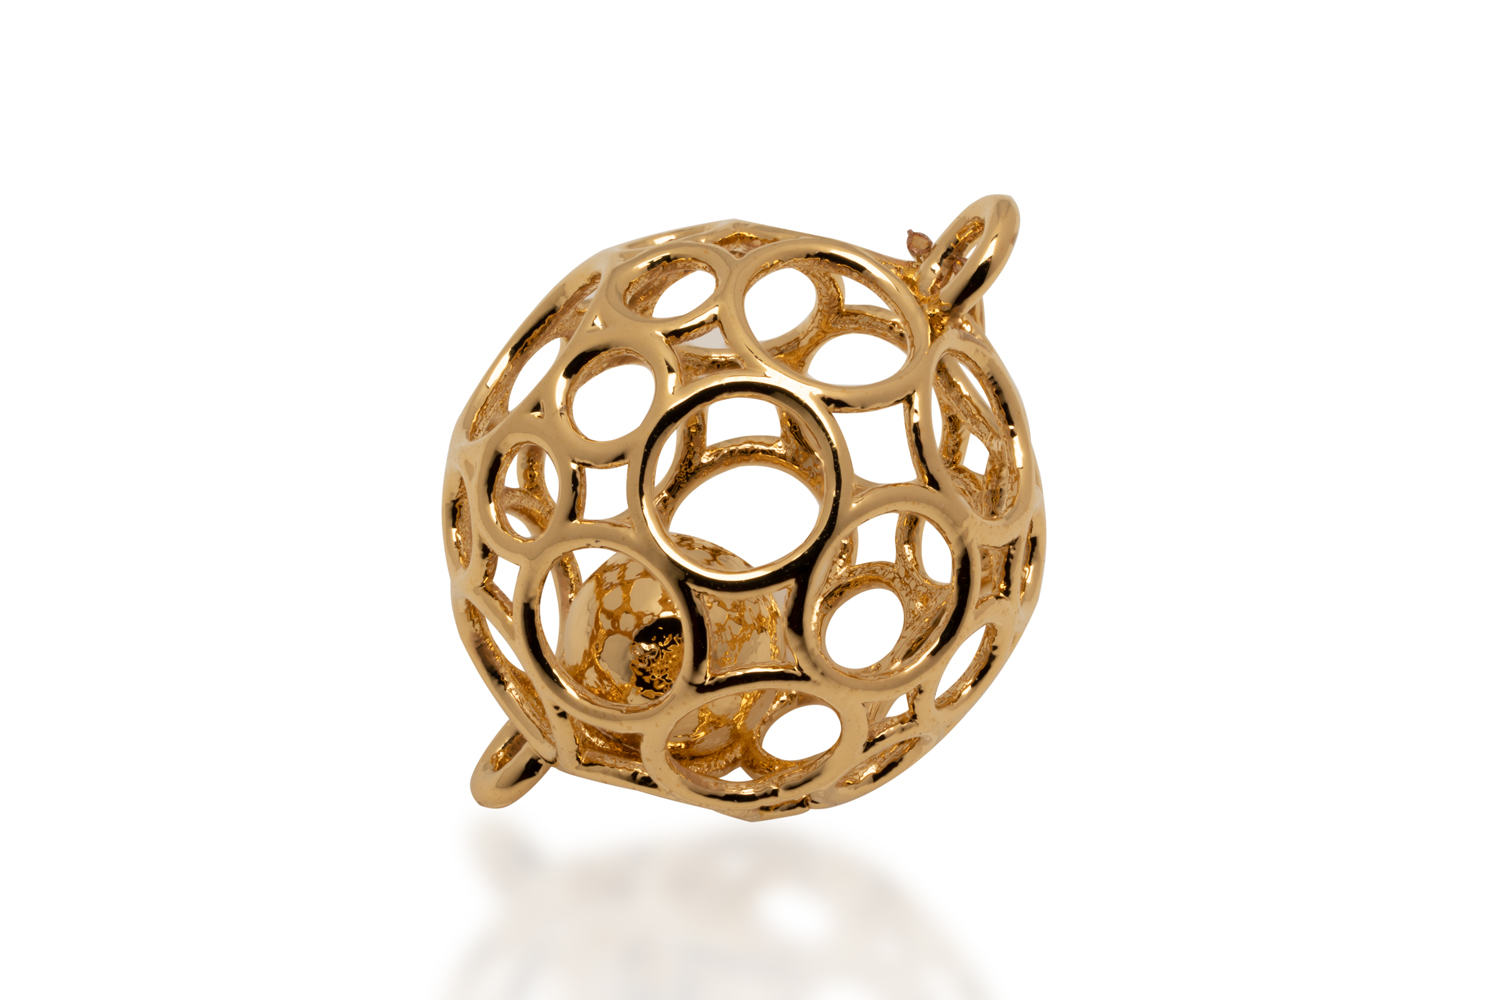 This jewelry ornament, designed by E.A.C., was 3D printed on the Shop System in steel, and subsequently gold-plated. Image via Desktop Metal.